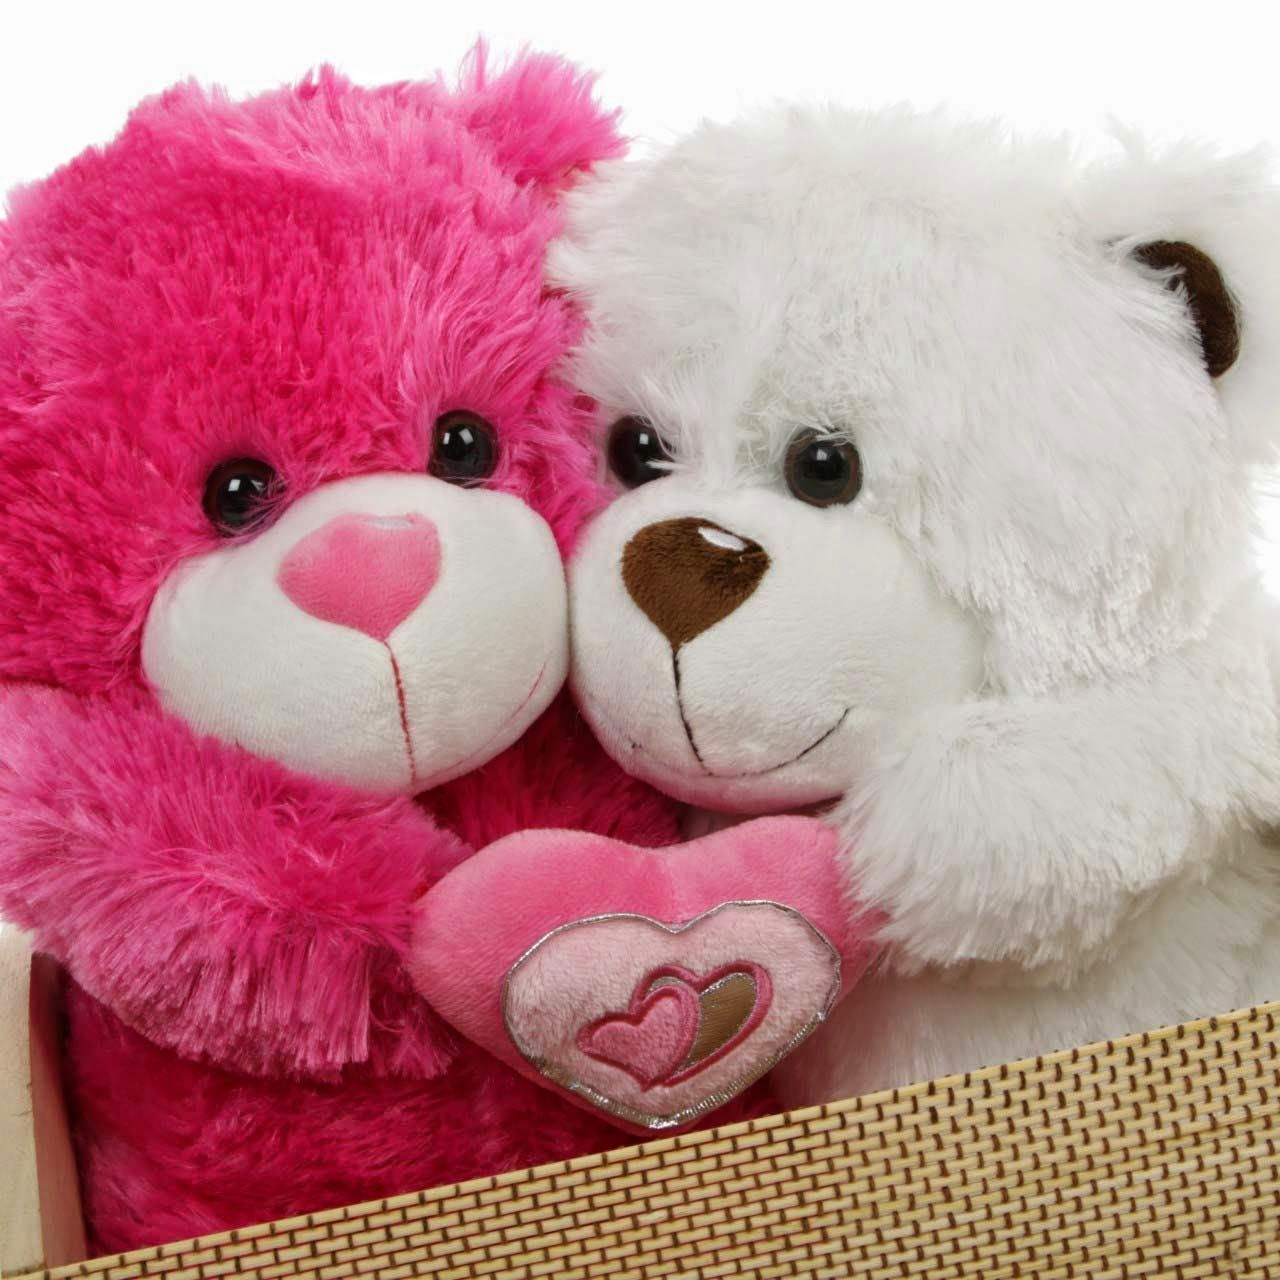 cute-teddy-bear-and-love-wallpapers-download-for-mobile_3 Hd Wallpaper Full Pinterest ...